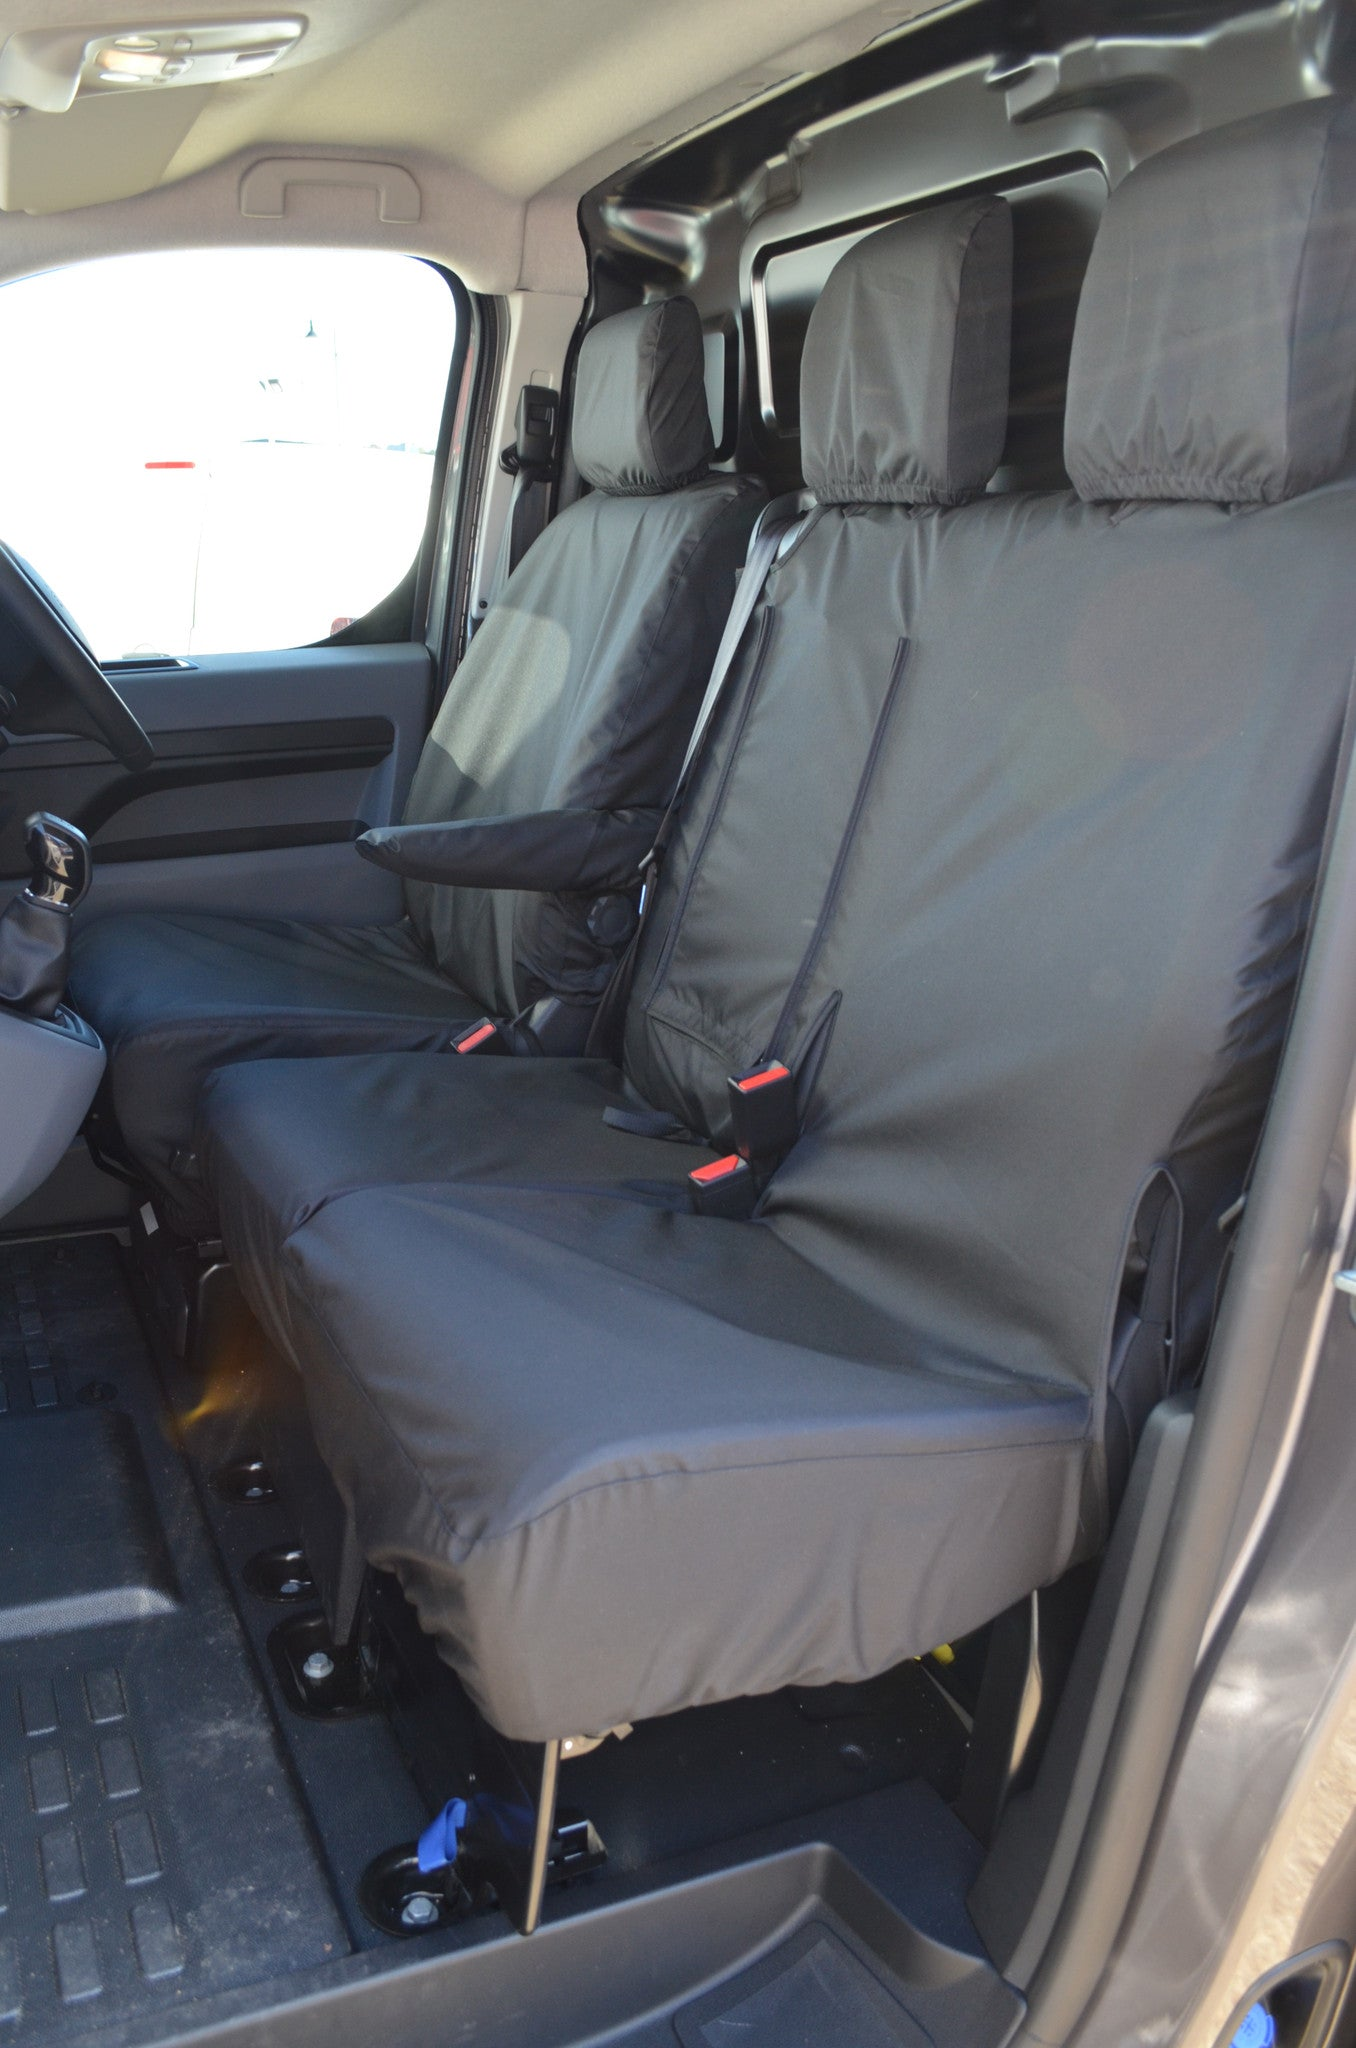 BLACK VAN SEAT COVER SINGLE AND DOUBLE FOR PEUGEOT BOXER VAN 07+ Bench seat